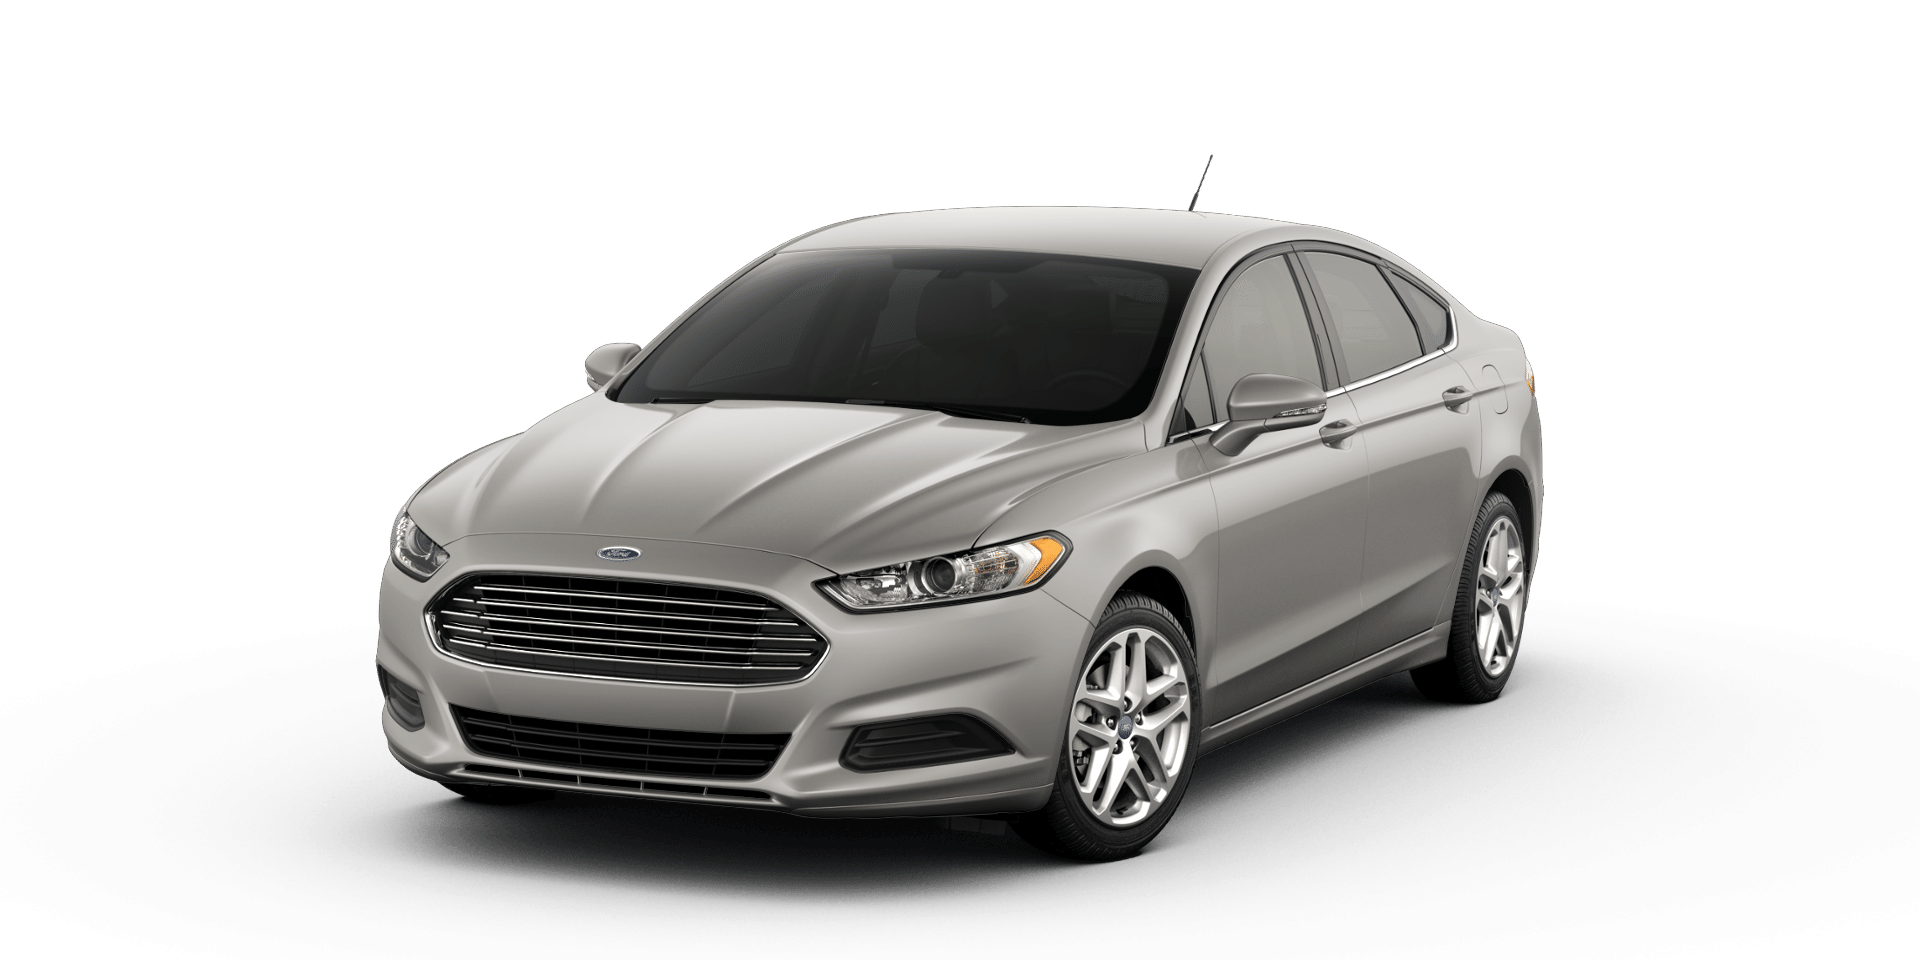 2016 ford fusion trims and colors - 2015 Ford Edge Titanium Magnetic